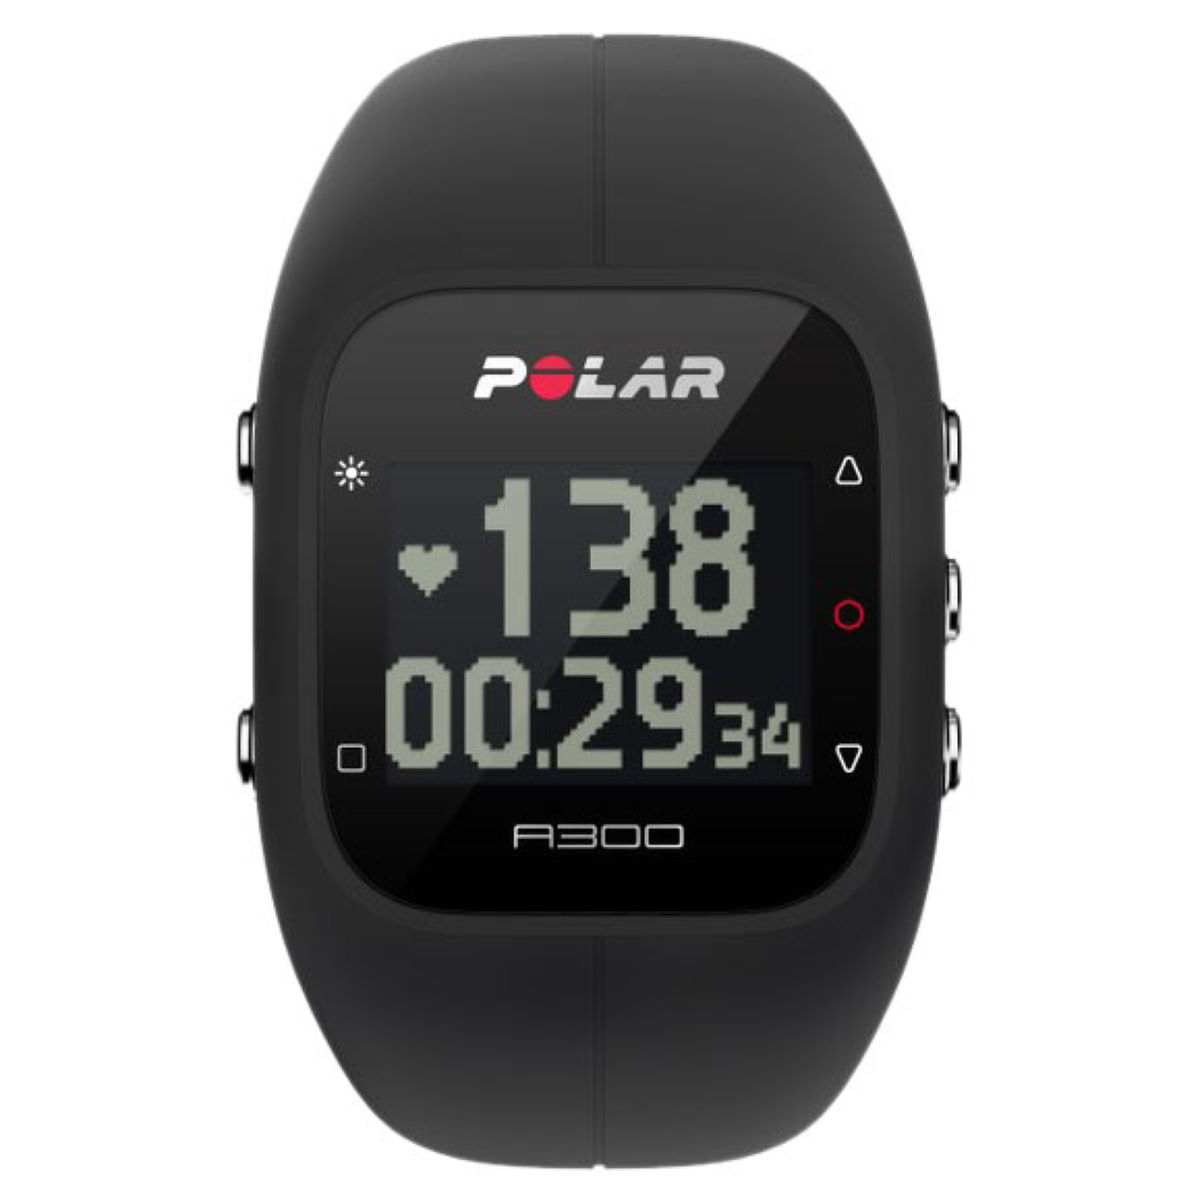 bracelet d activité decathlon shopping wiggle polar montre de fitness polar a300 608